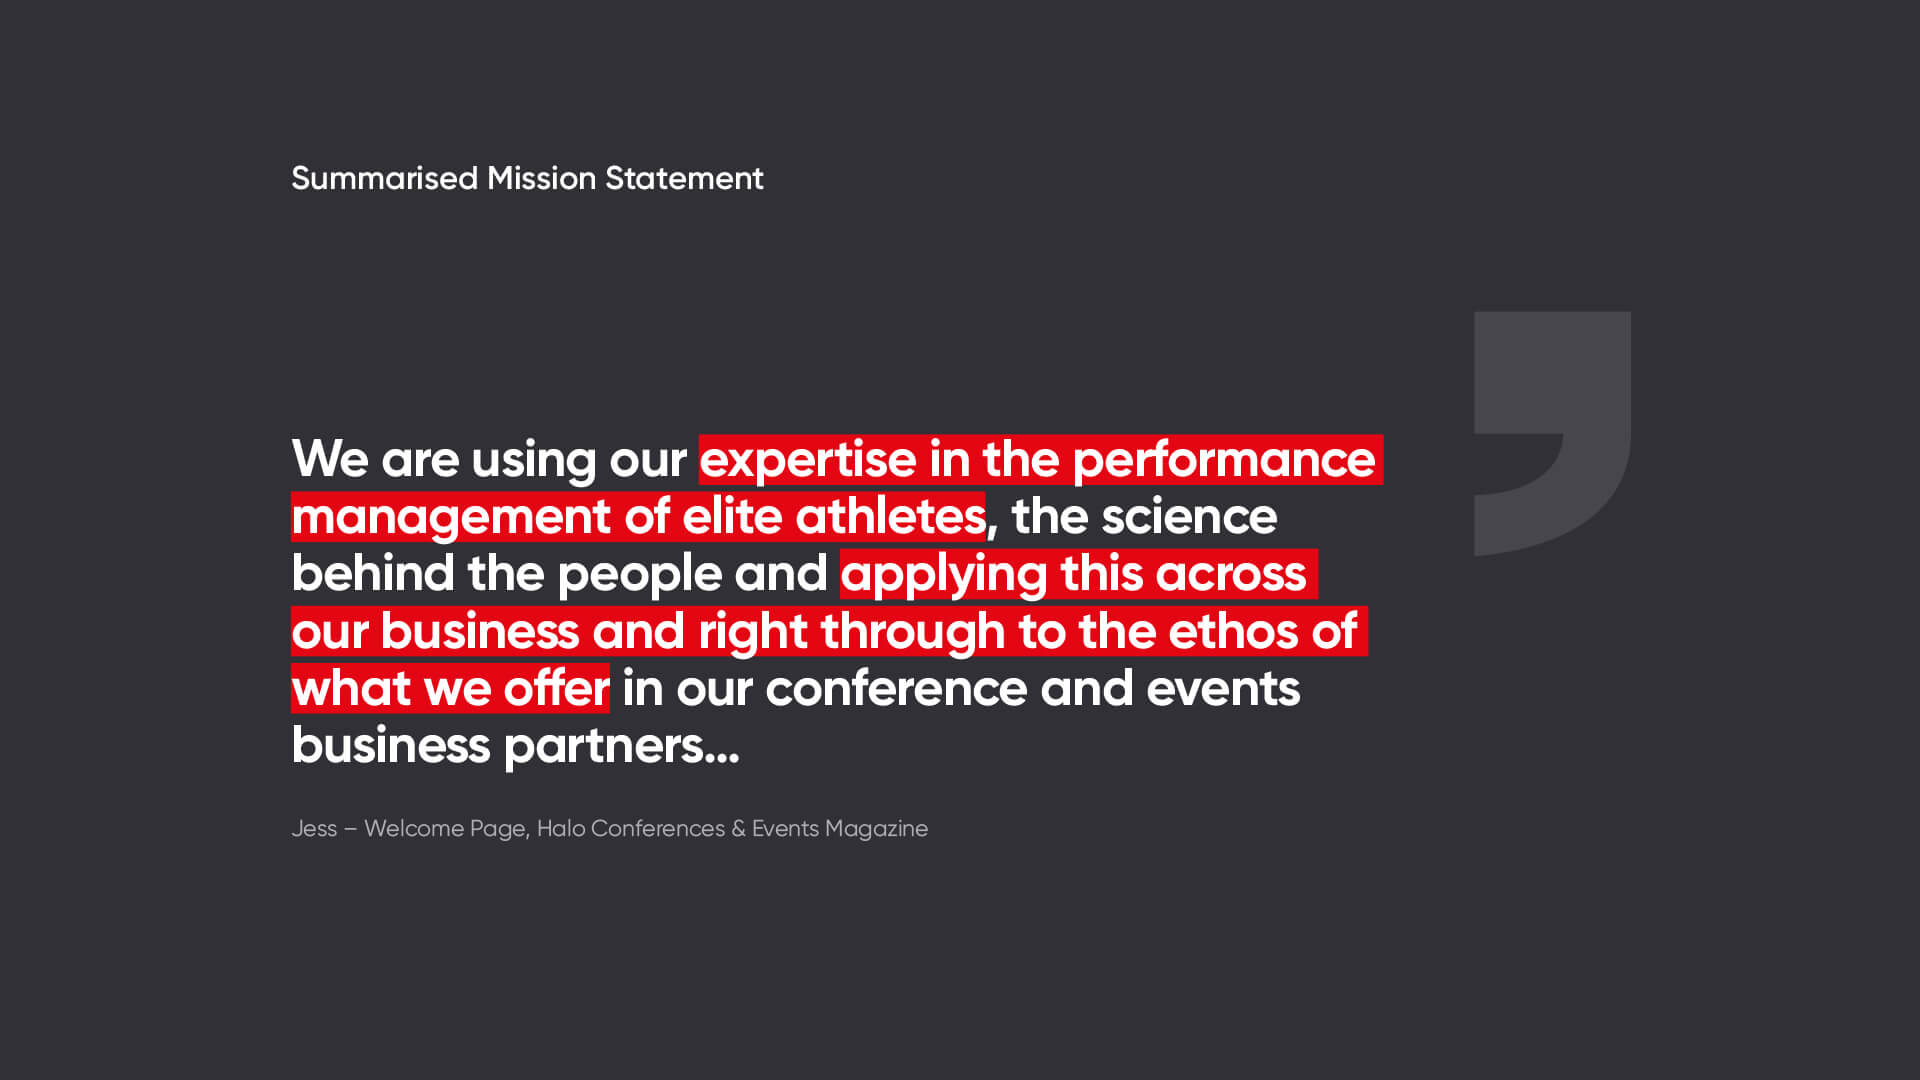 Halo Conferences & Events Mission Statement